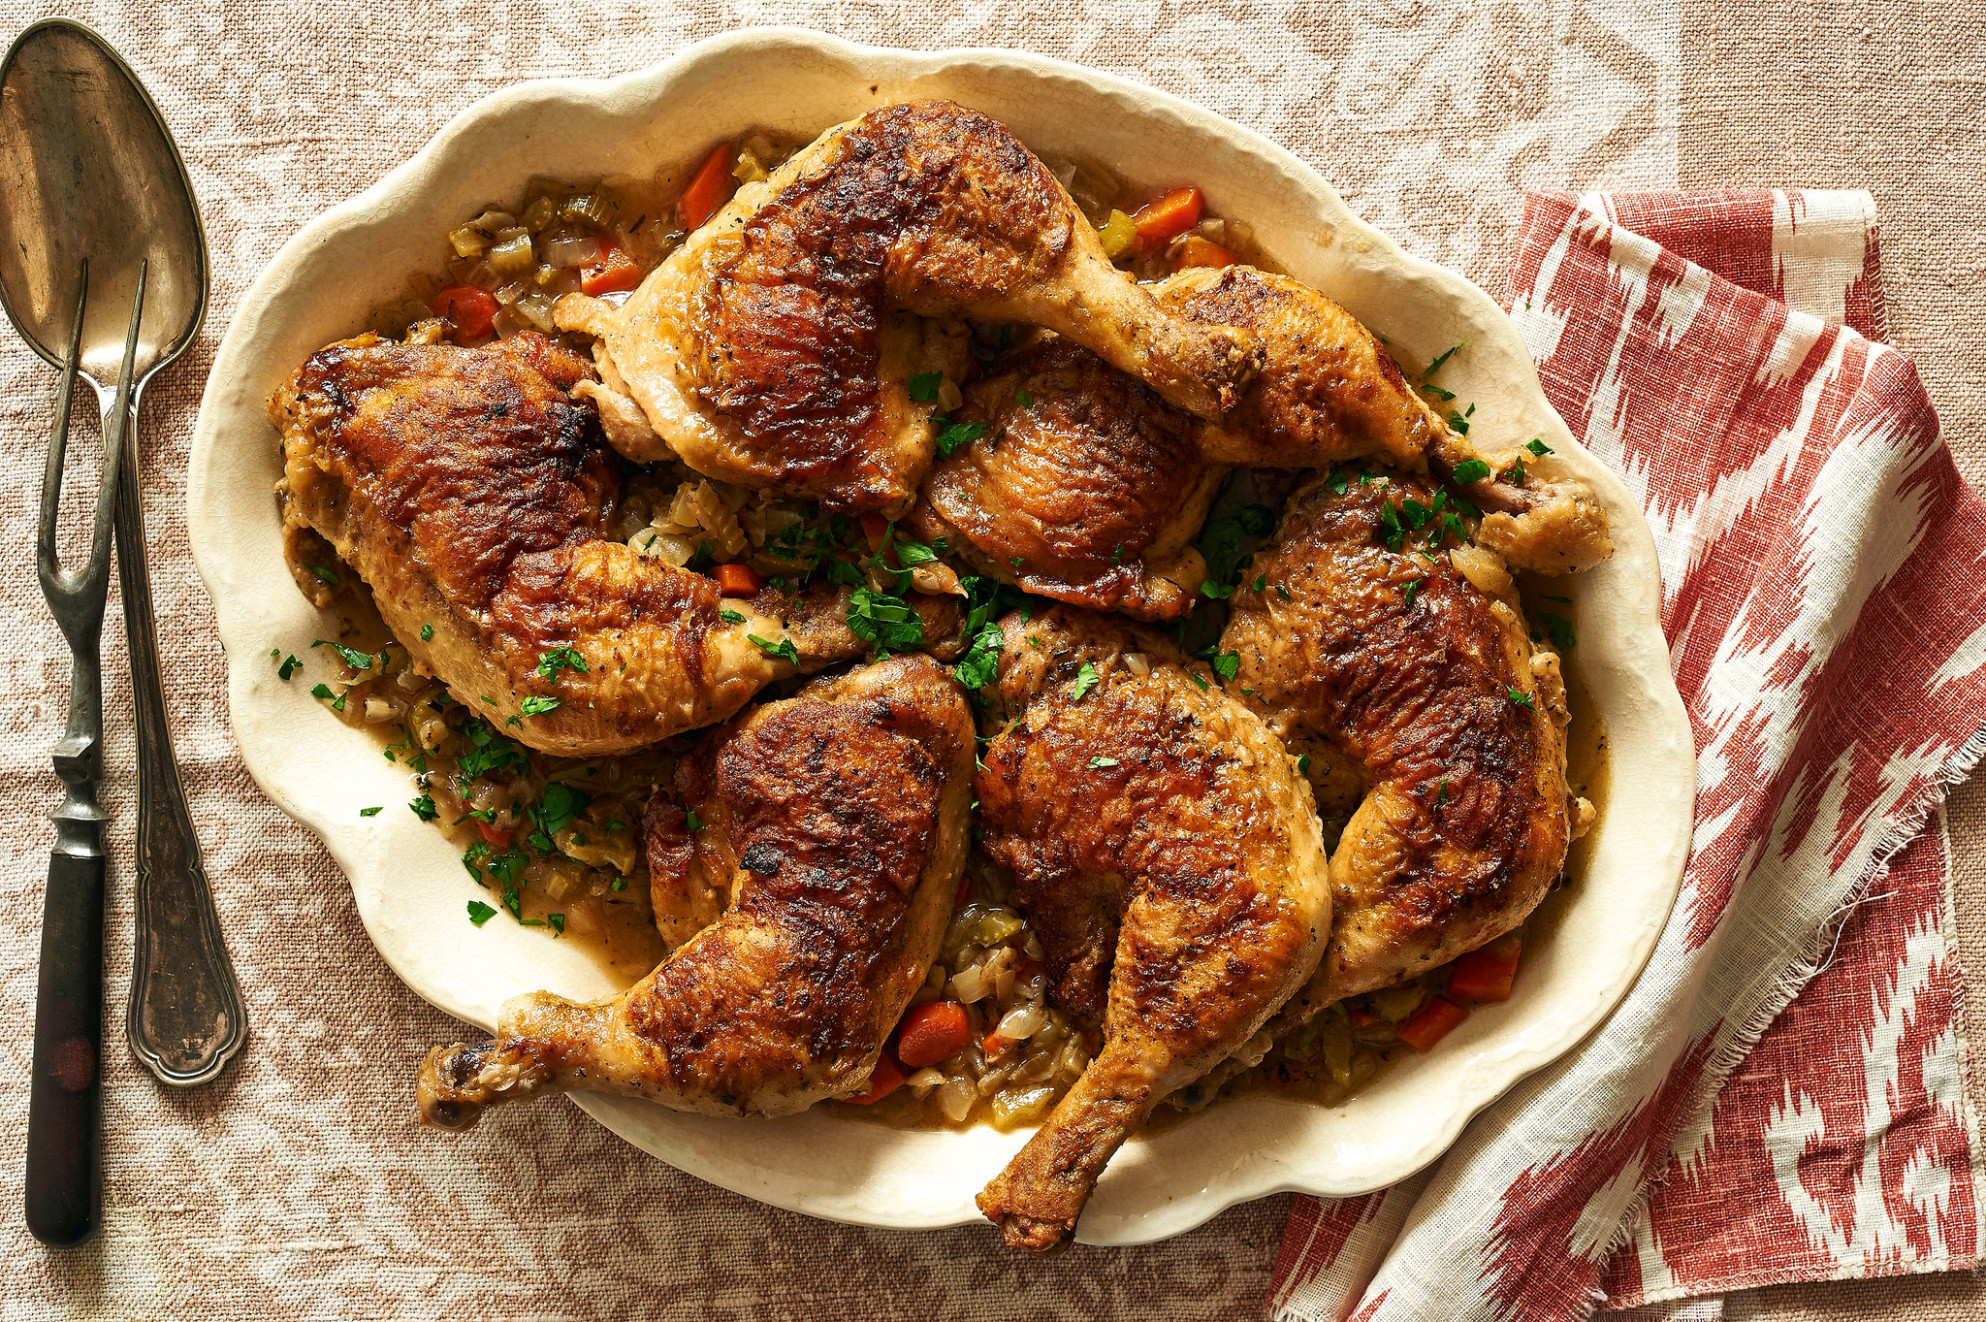 Cal Peternell's Braised Chicken Legs Recipe - NYT Cooking